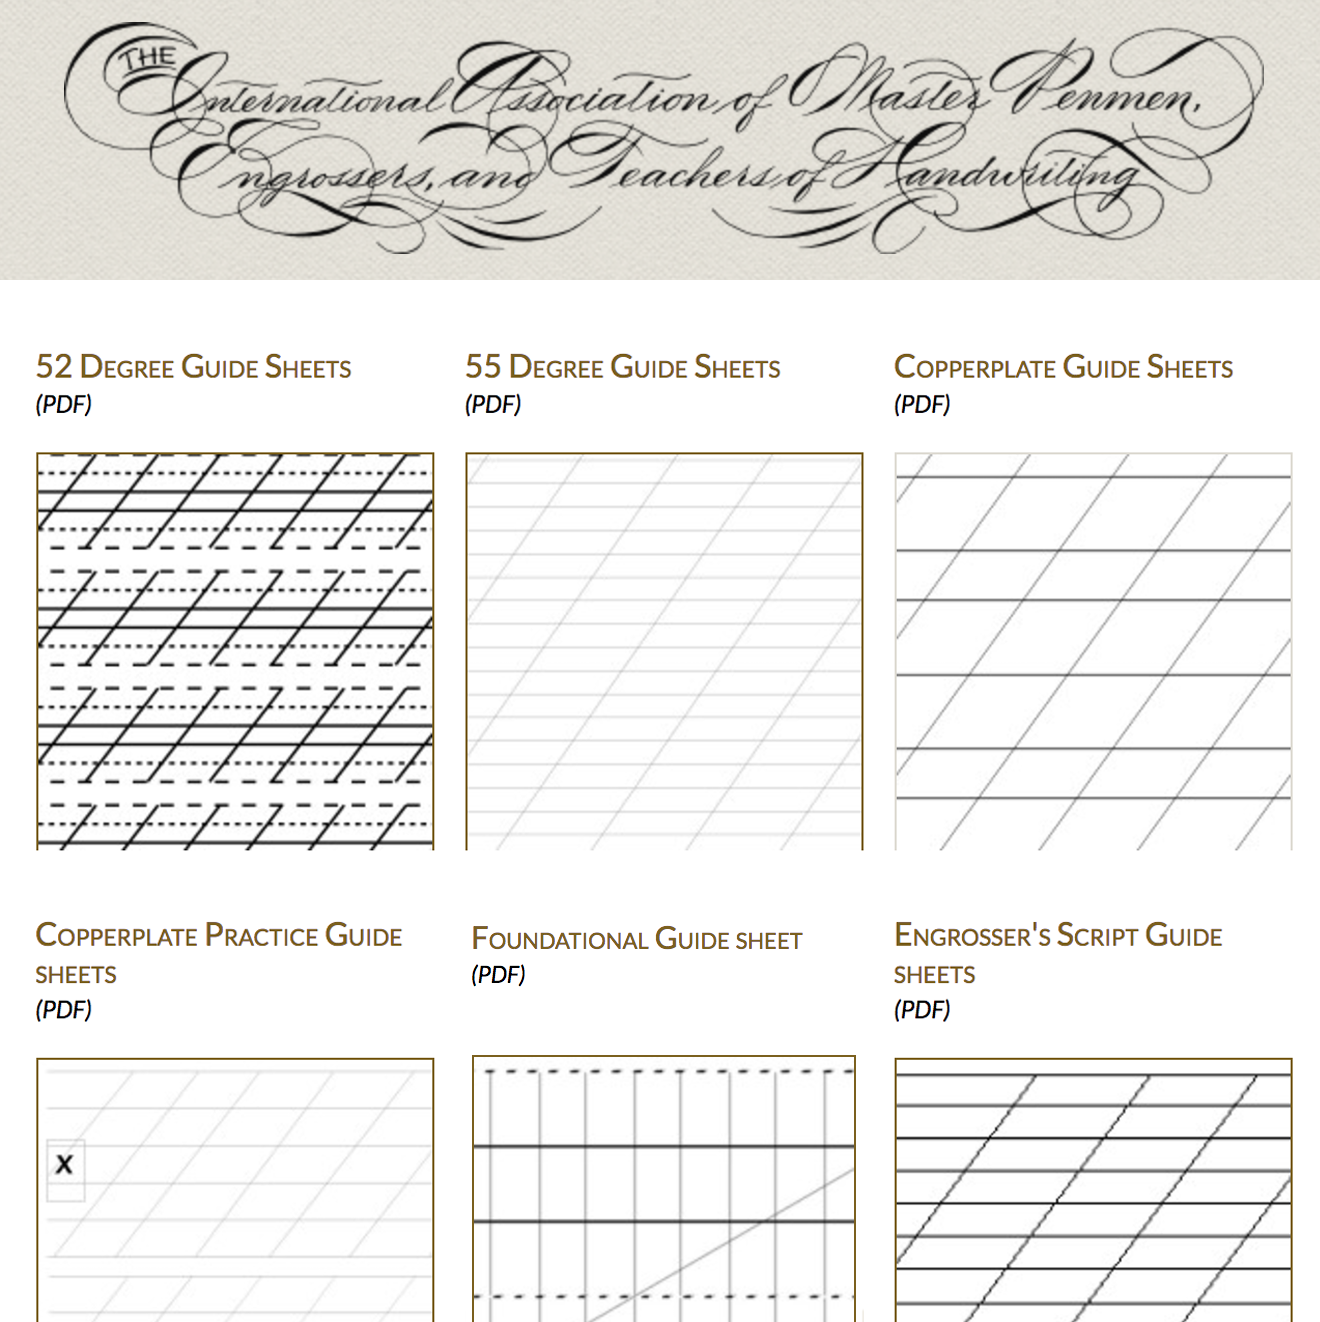 Free Calligraphy Guide Sheets    IAMPETH.com  - 'THE International association of master penmen, engravers and teachers of writing' has some extremely useful guide sheets to help with practicing copperplate. Available to download as PDF files via their website.